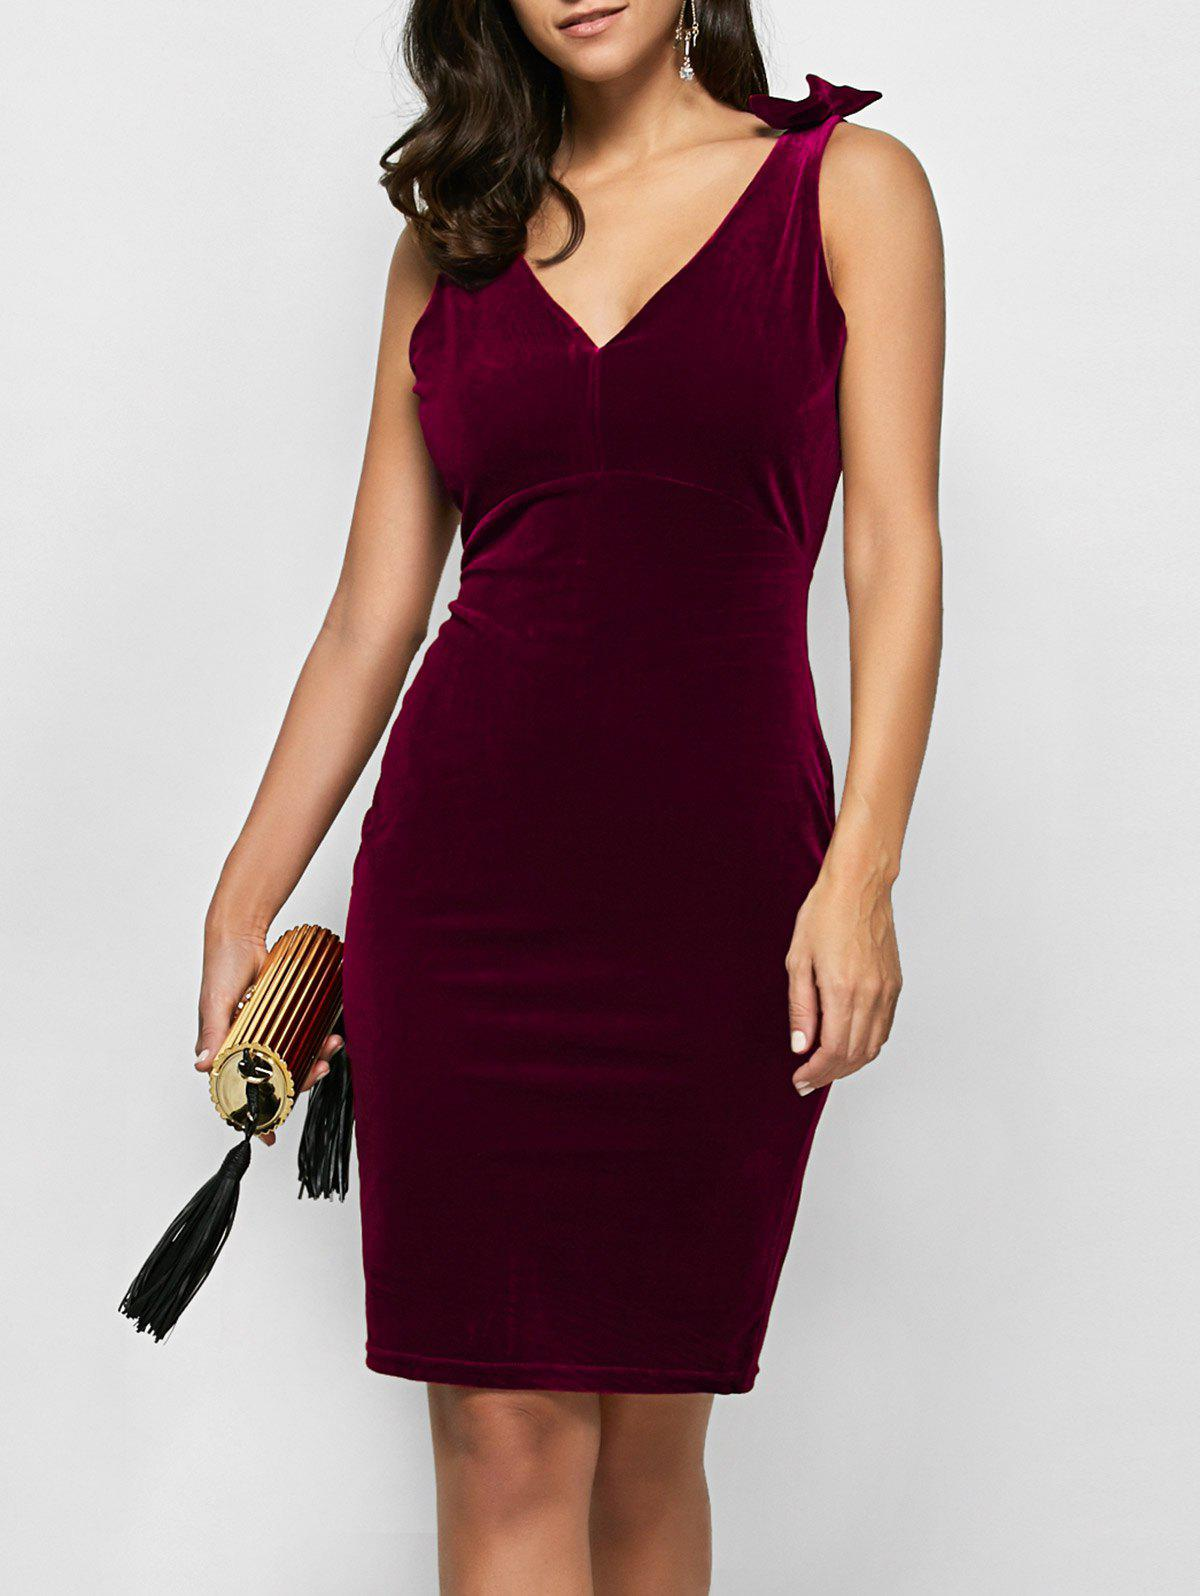 Velvet V Neck Sheath Cocktail Dress - WINE RED M